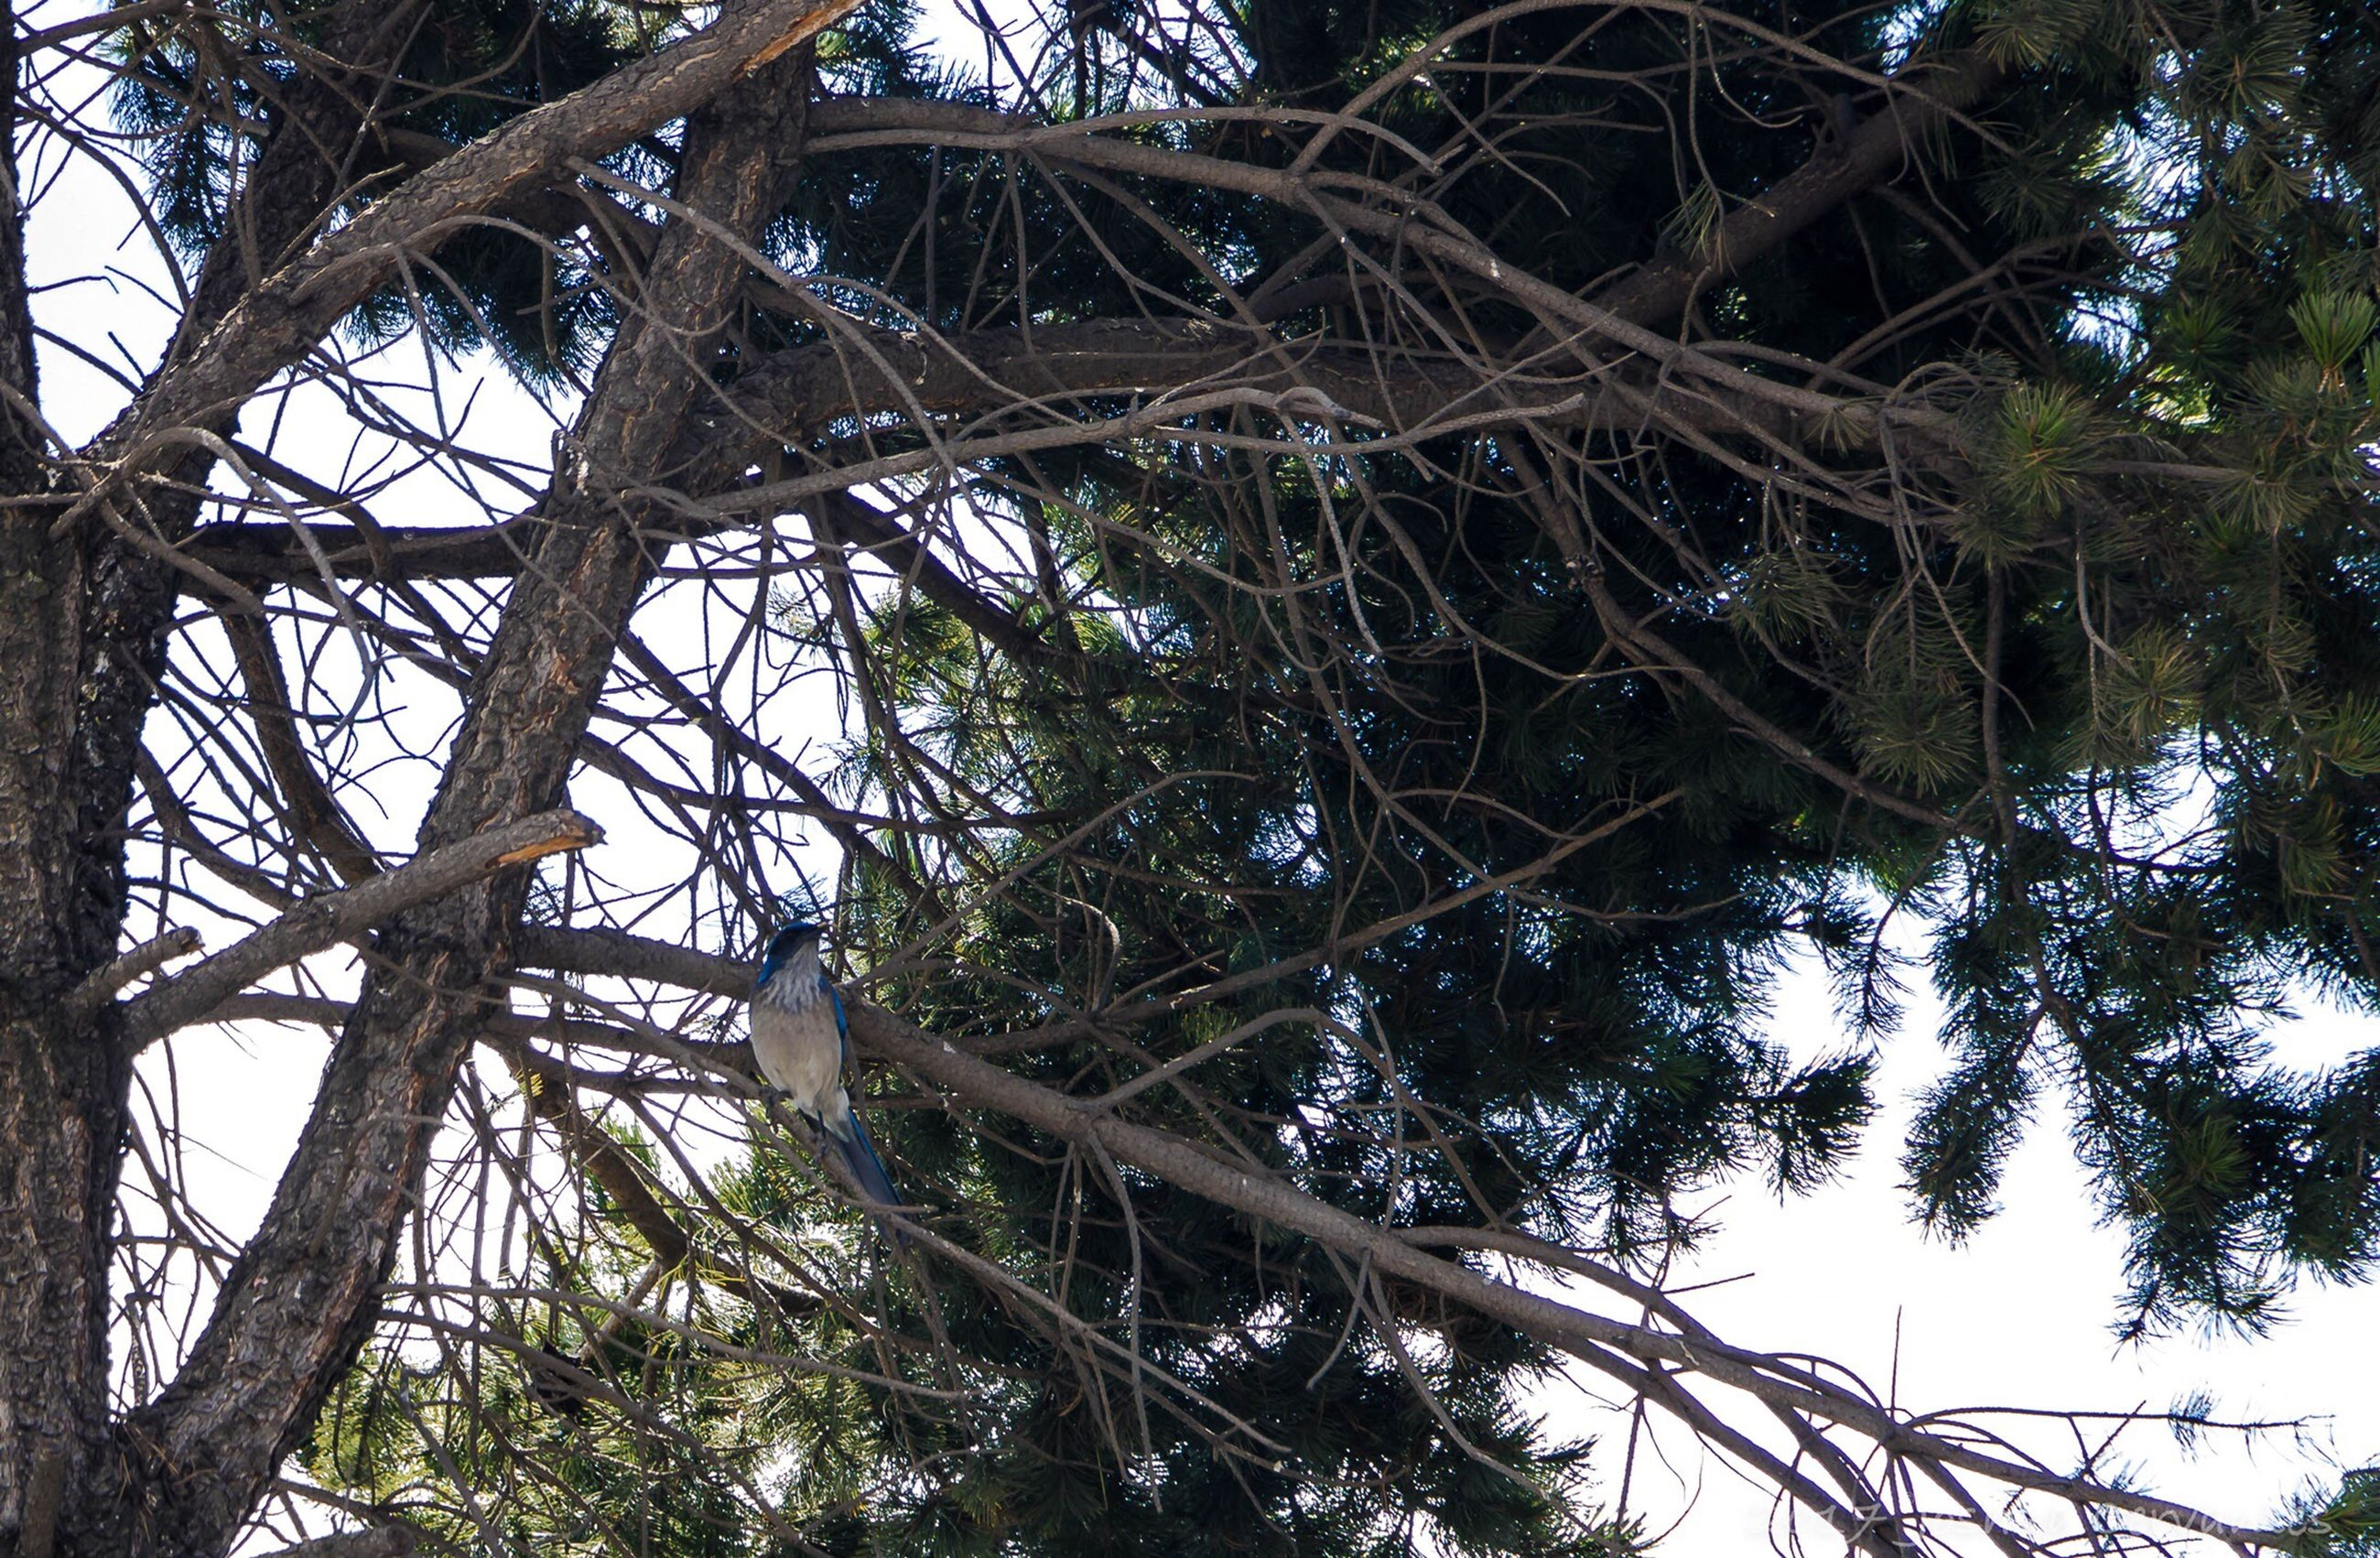 tree, low angle view, nature, growth, branch, beauty in nature, no people, outdoors, tranquility, day, sky, backgrounds